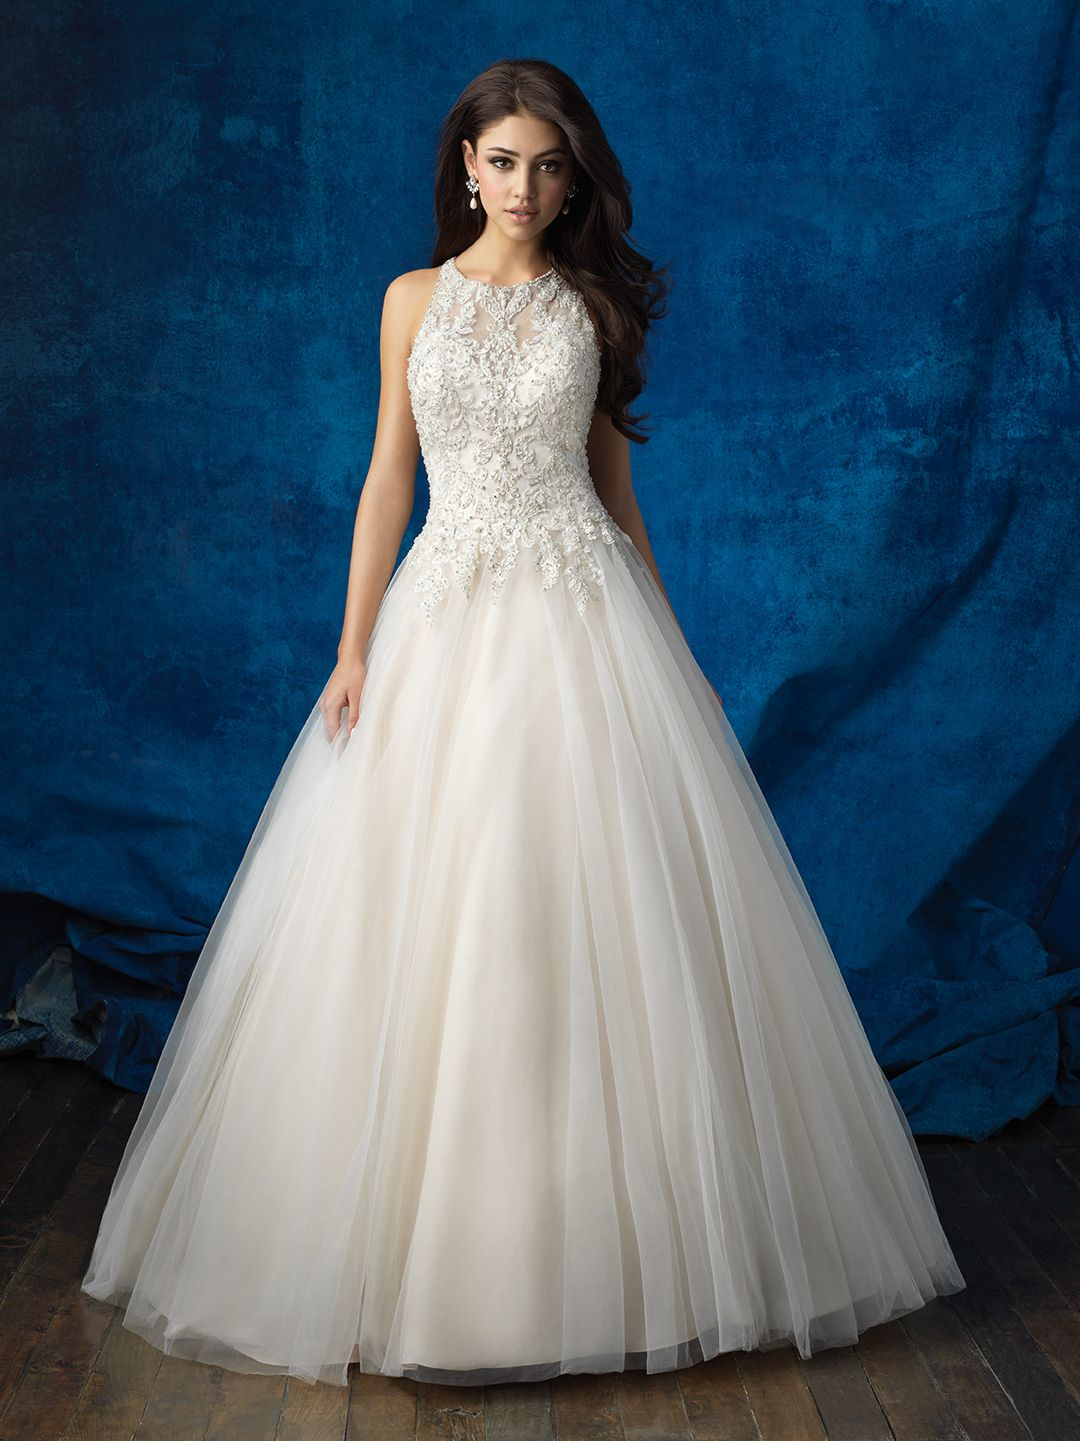 This Regal Ballgown Features A High Neck And Elegant Beadwork